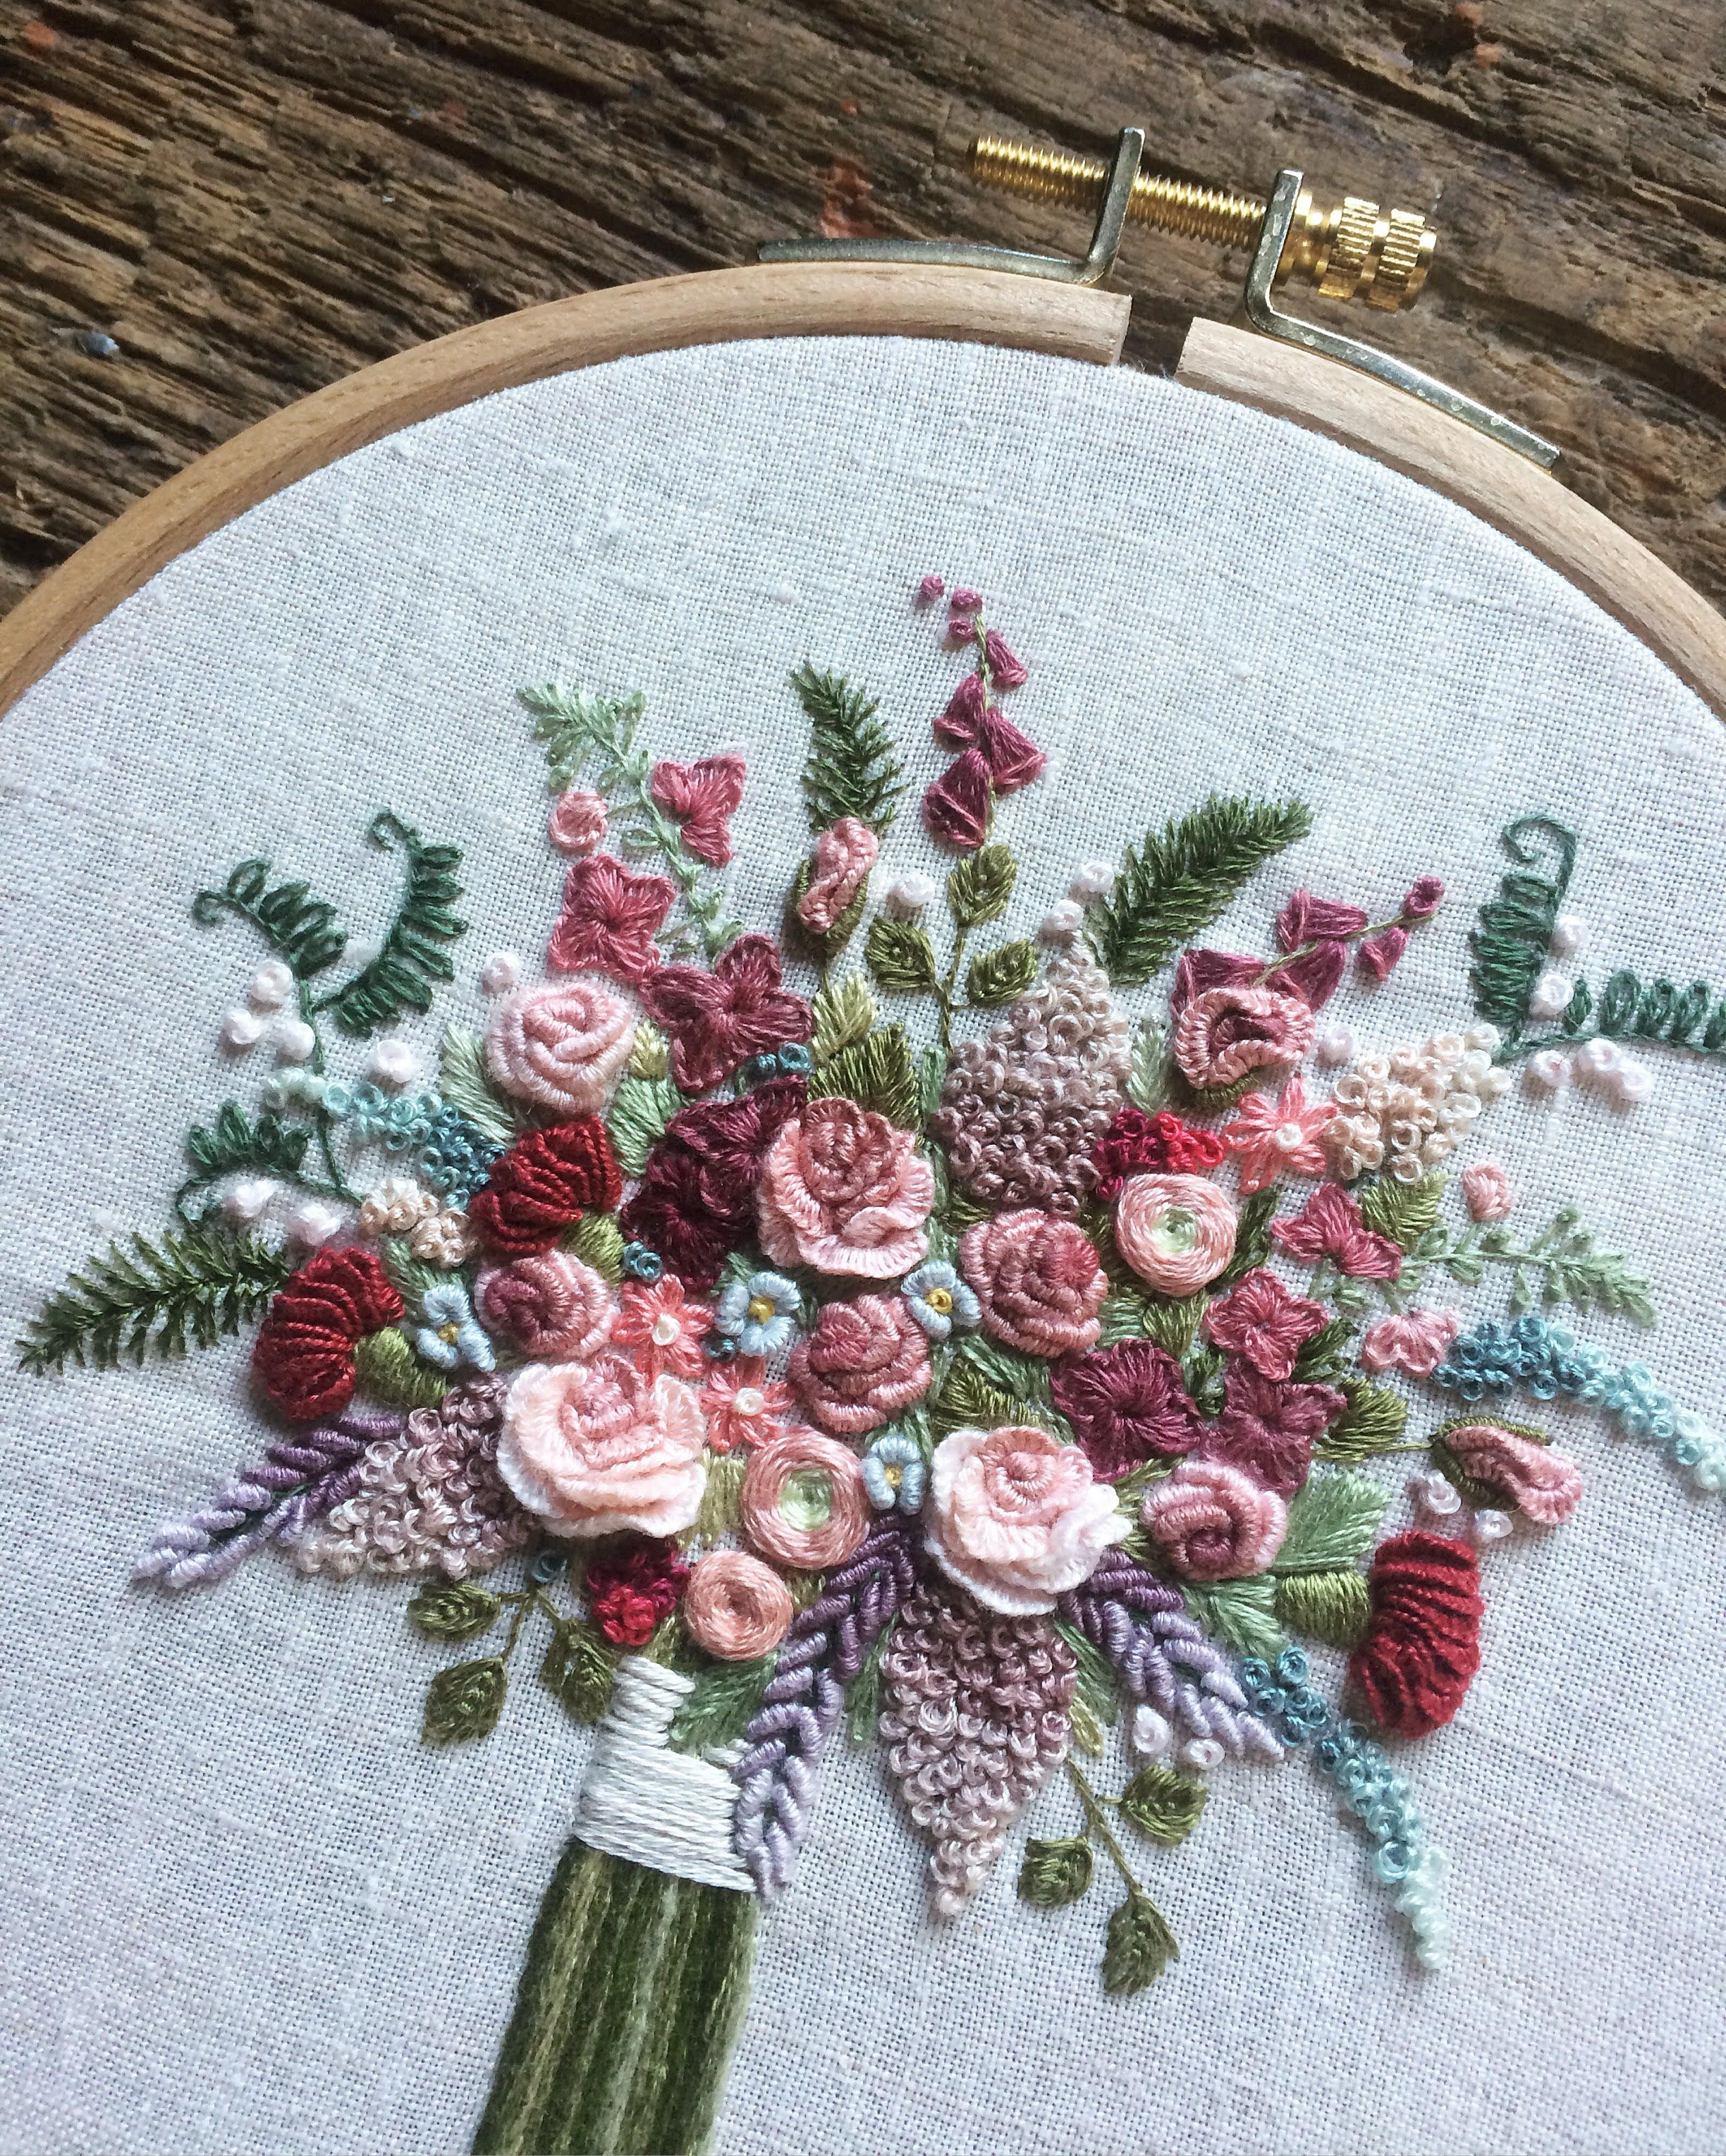 My embroidery #silkribbonembroiderypatterns